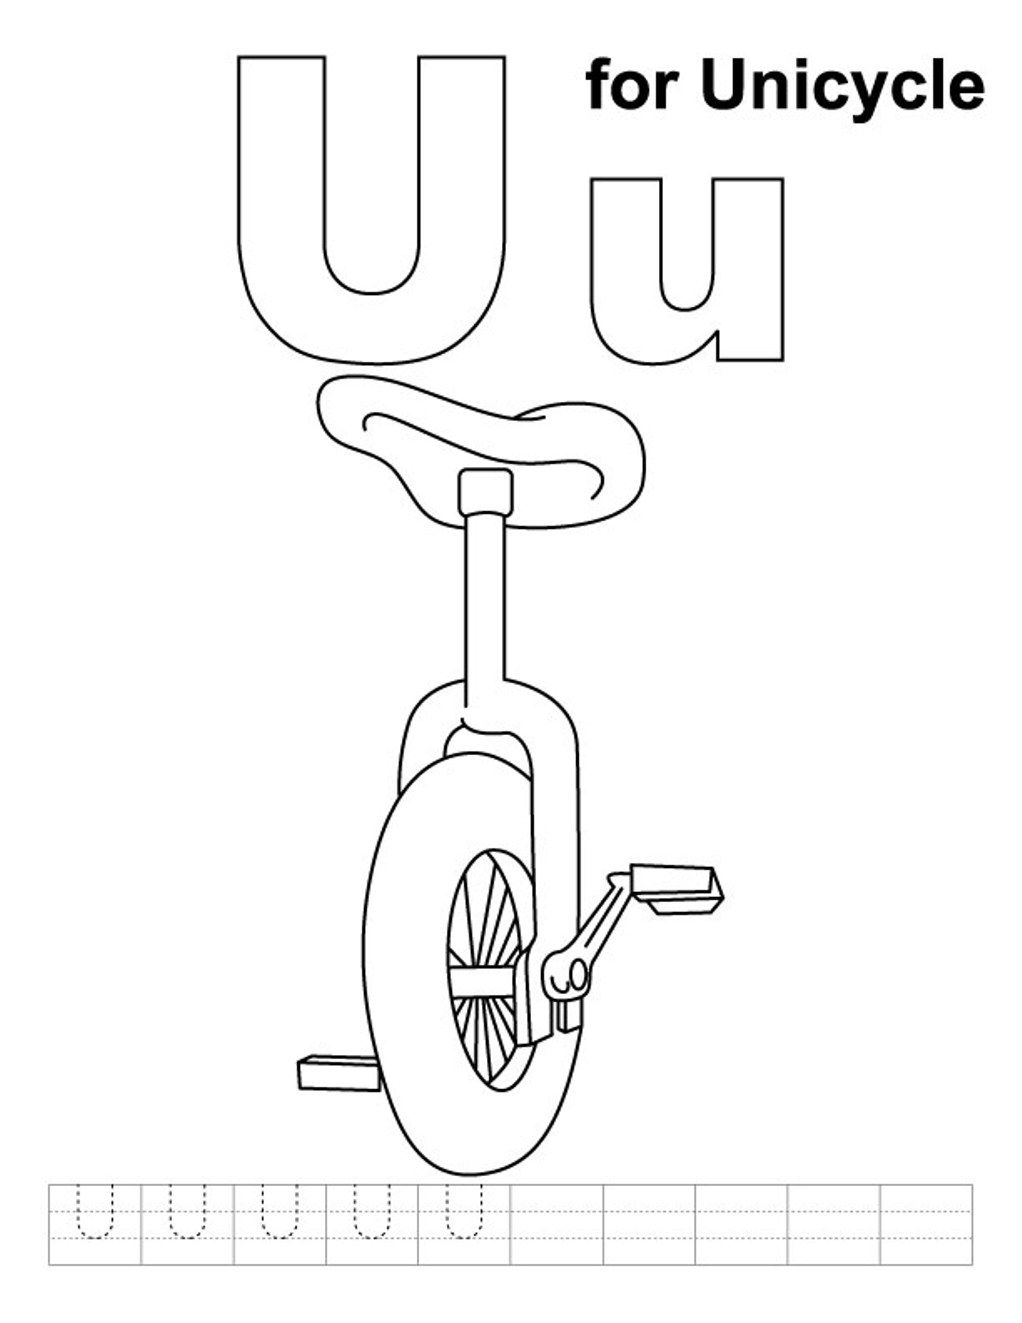 Unicycle Alphabet Coloring Pages Free Alphabet Coloring Pages Coloring Pages Alphabet Coloring